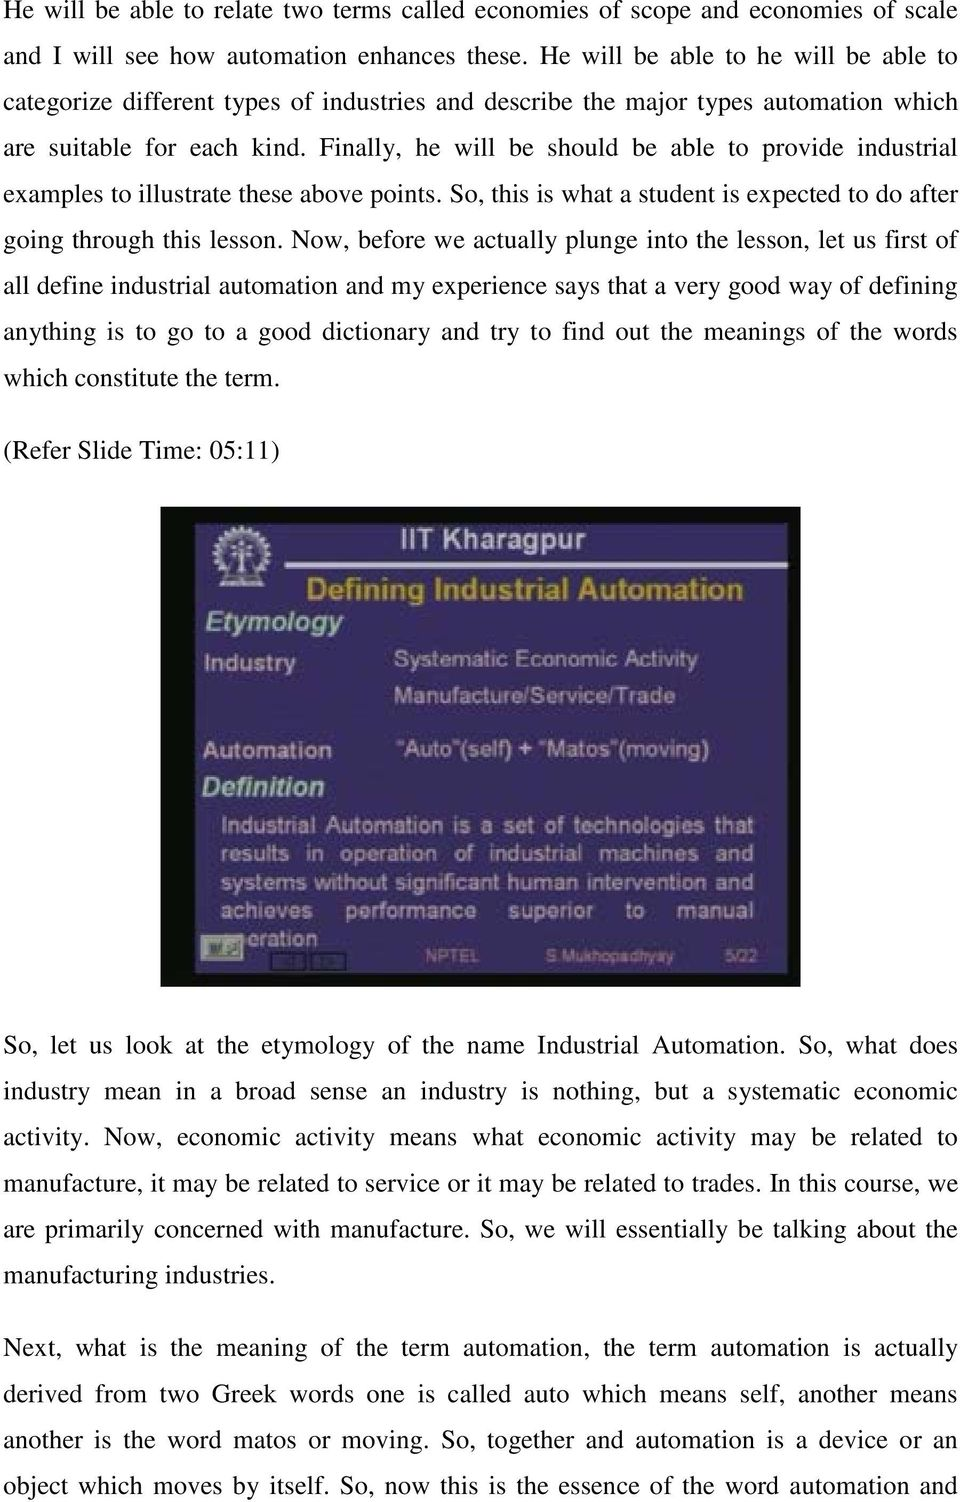 Industrial Automation and Control Prof  S  Mukhopadhyay